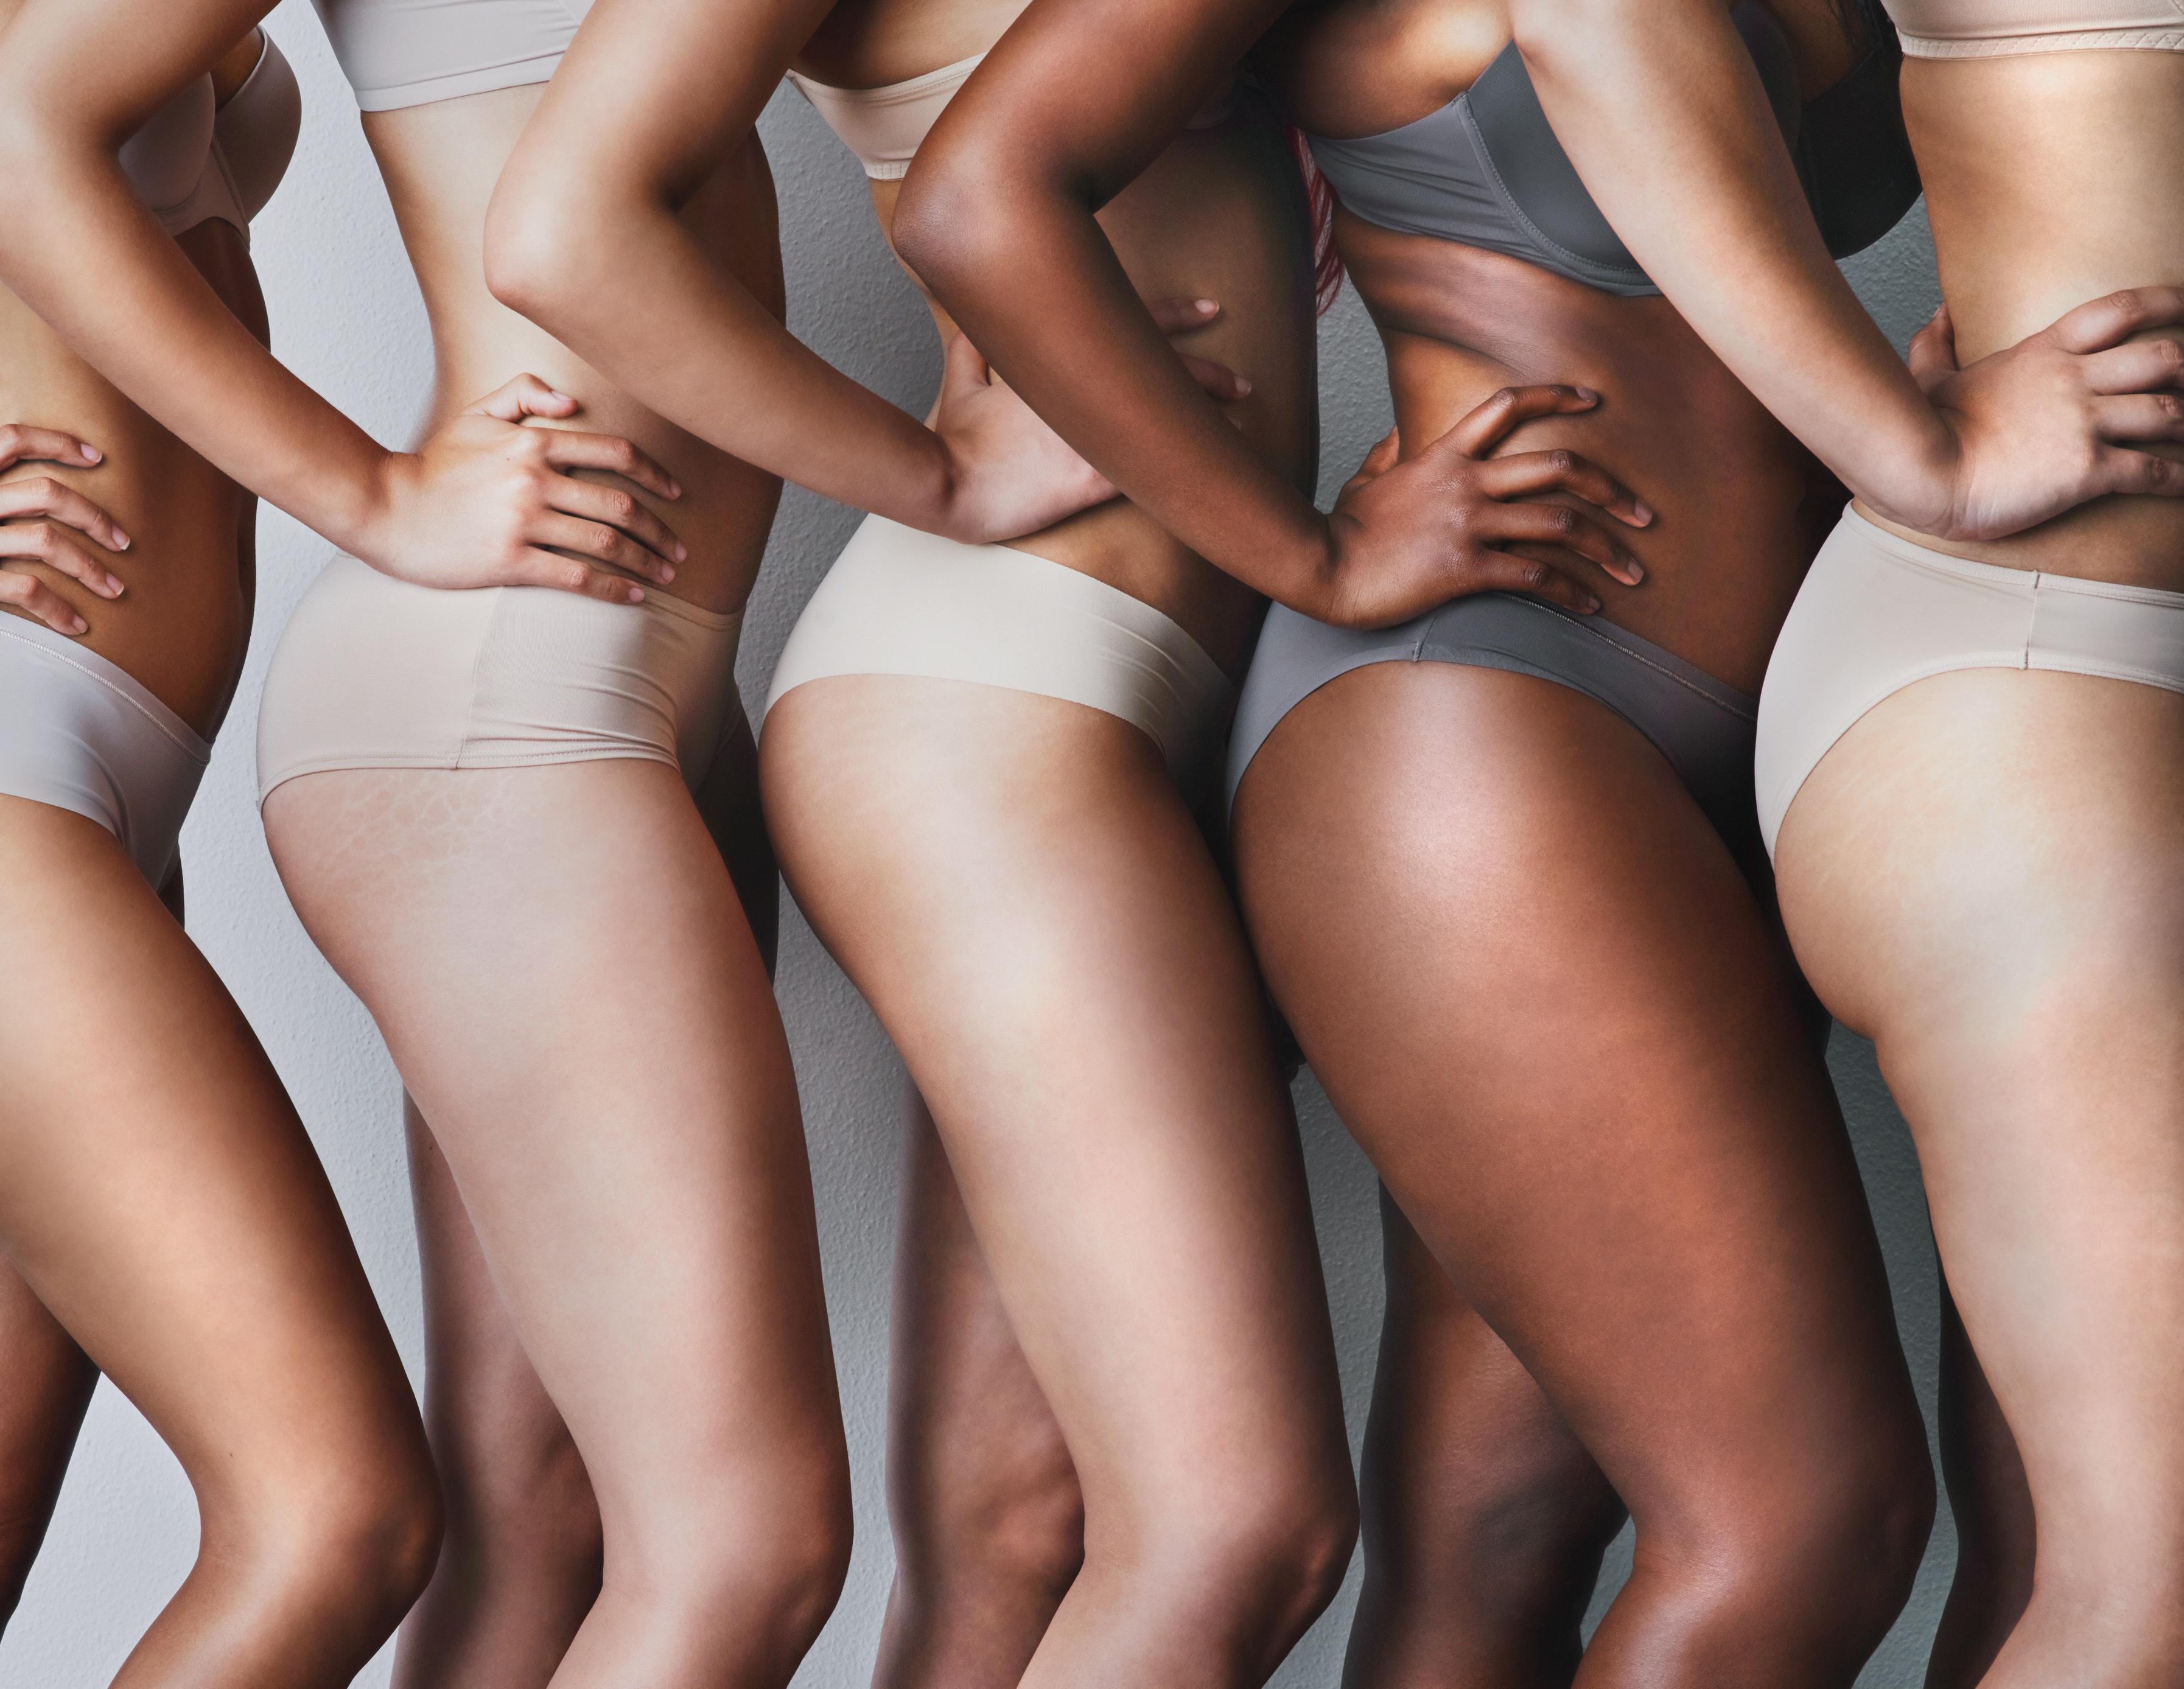 Ask a Plastic Surgeon: Can I Get Rid of My Cellulite?